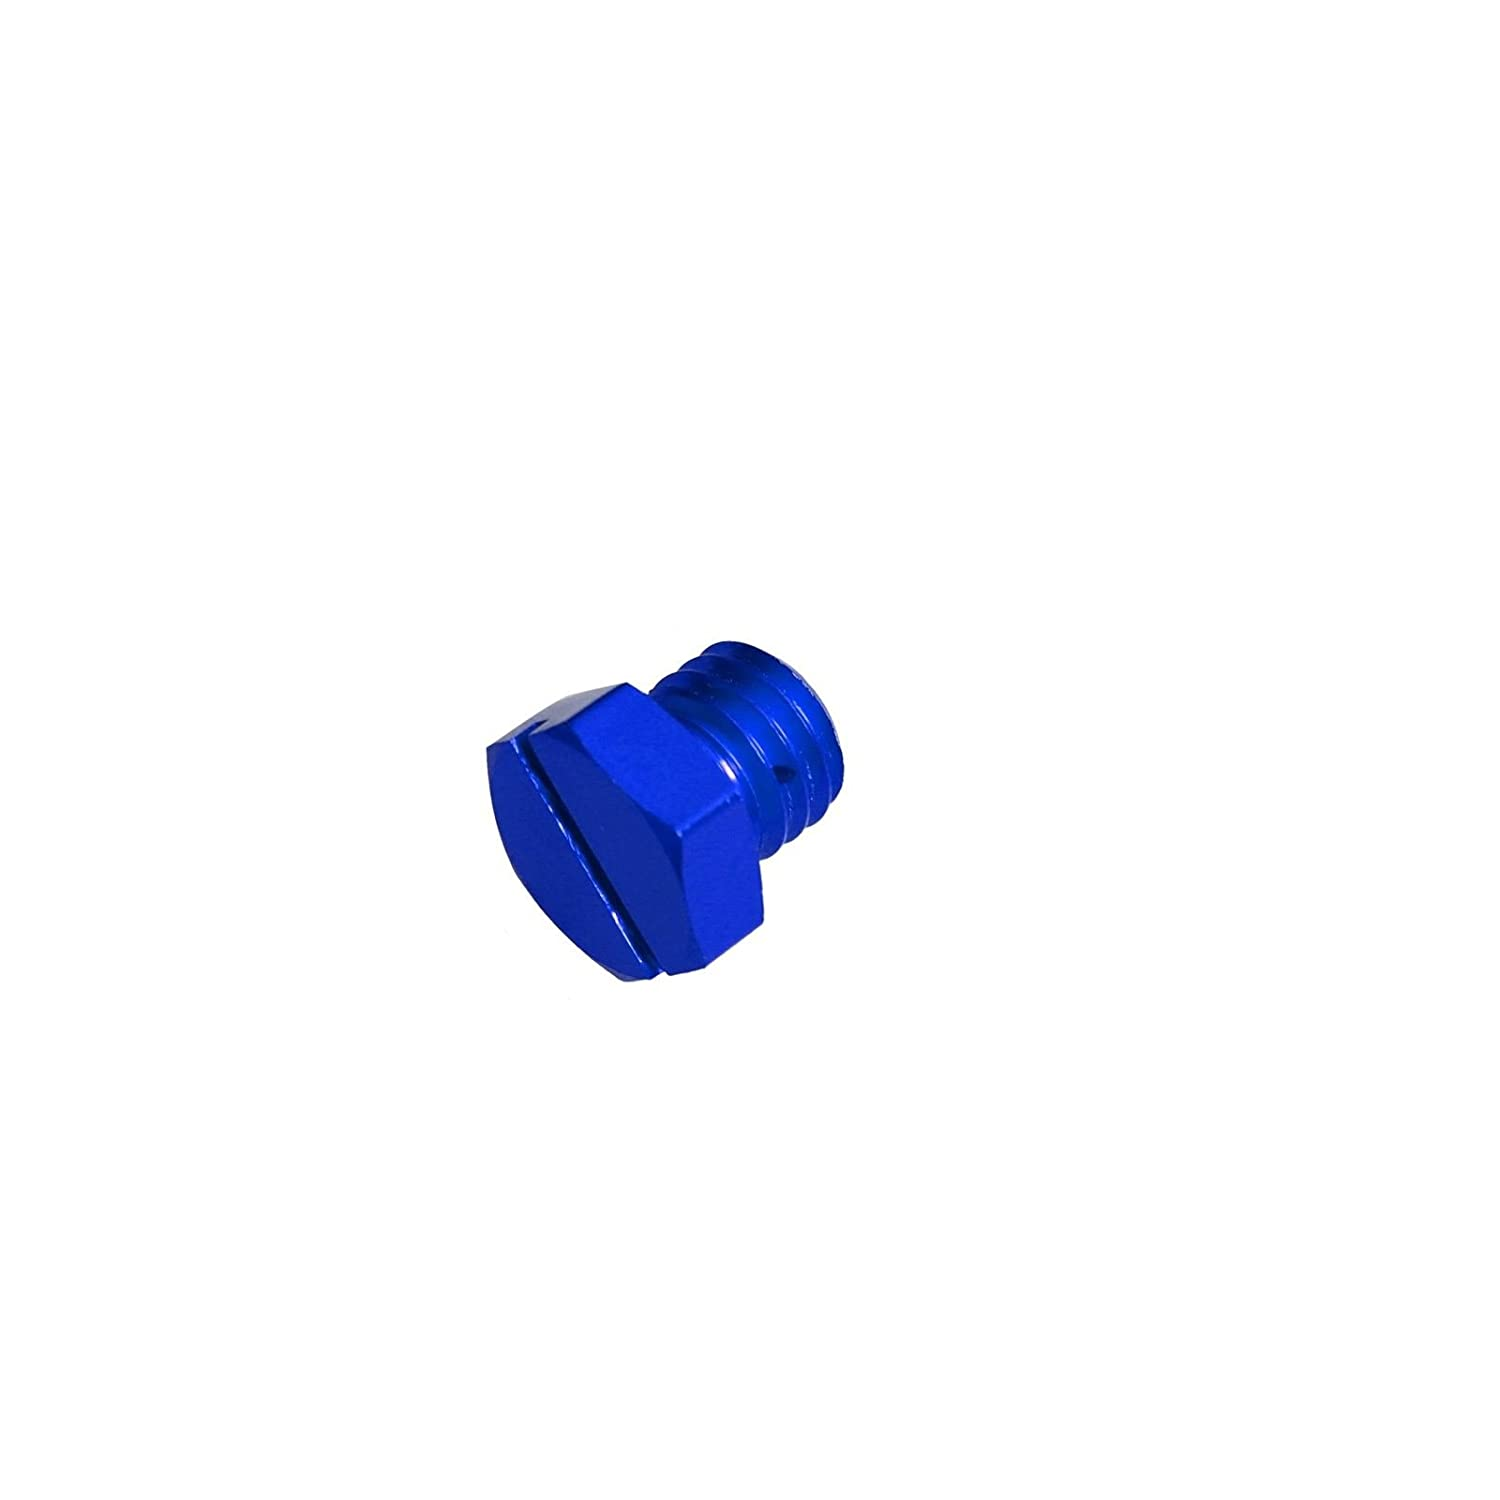 for Chevy Duramax GMC 6.6L Blue CAT Fuel Filter Adapter & Spacer ...